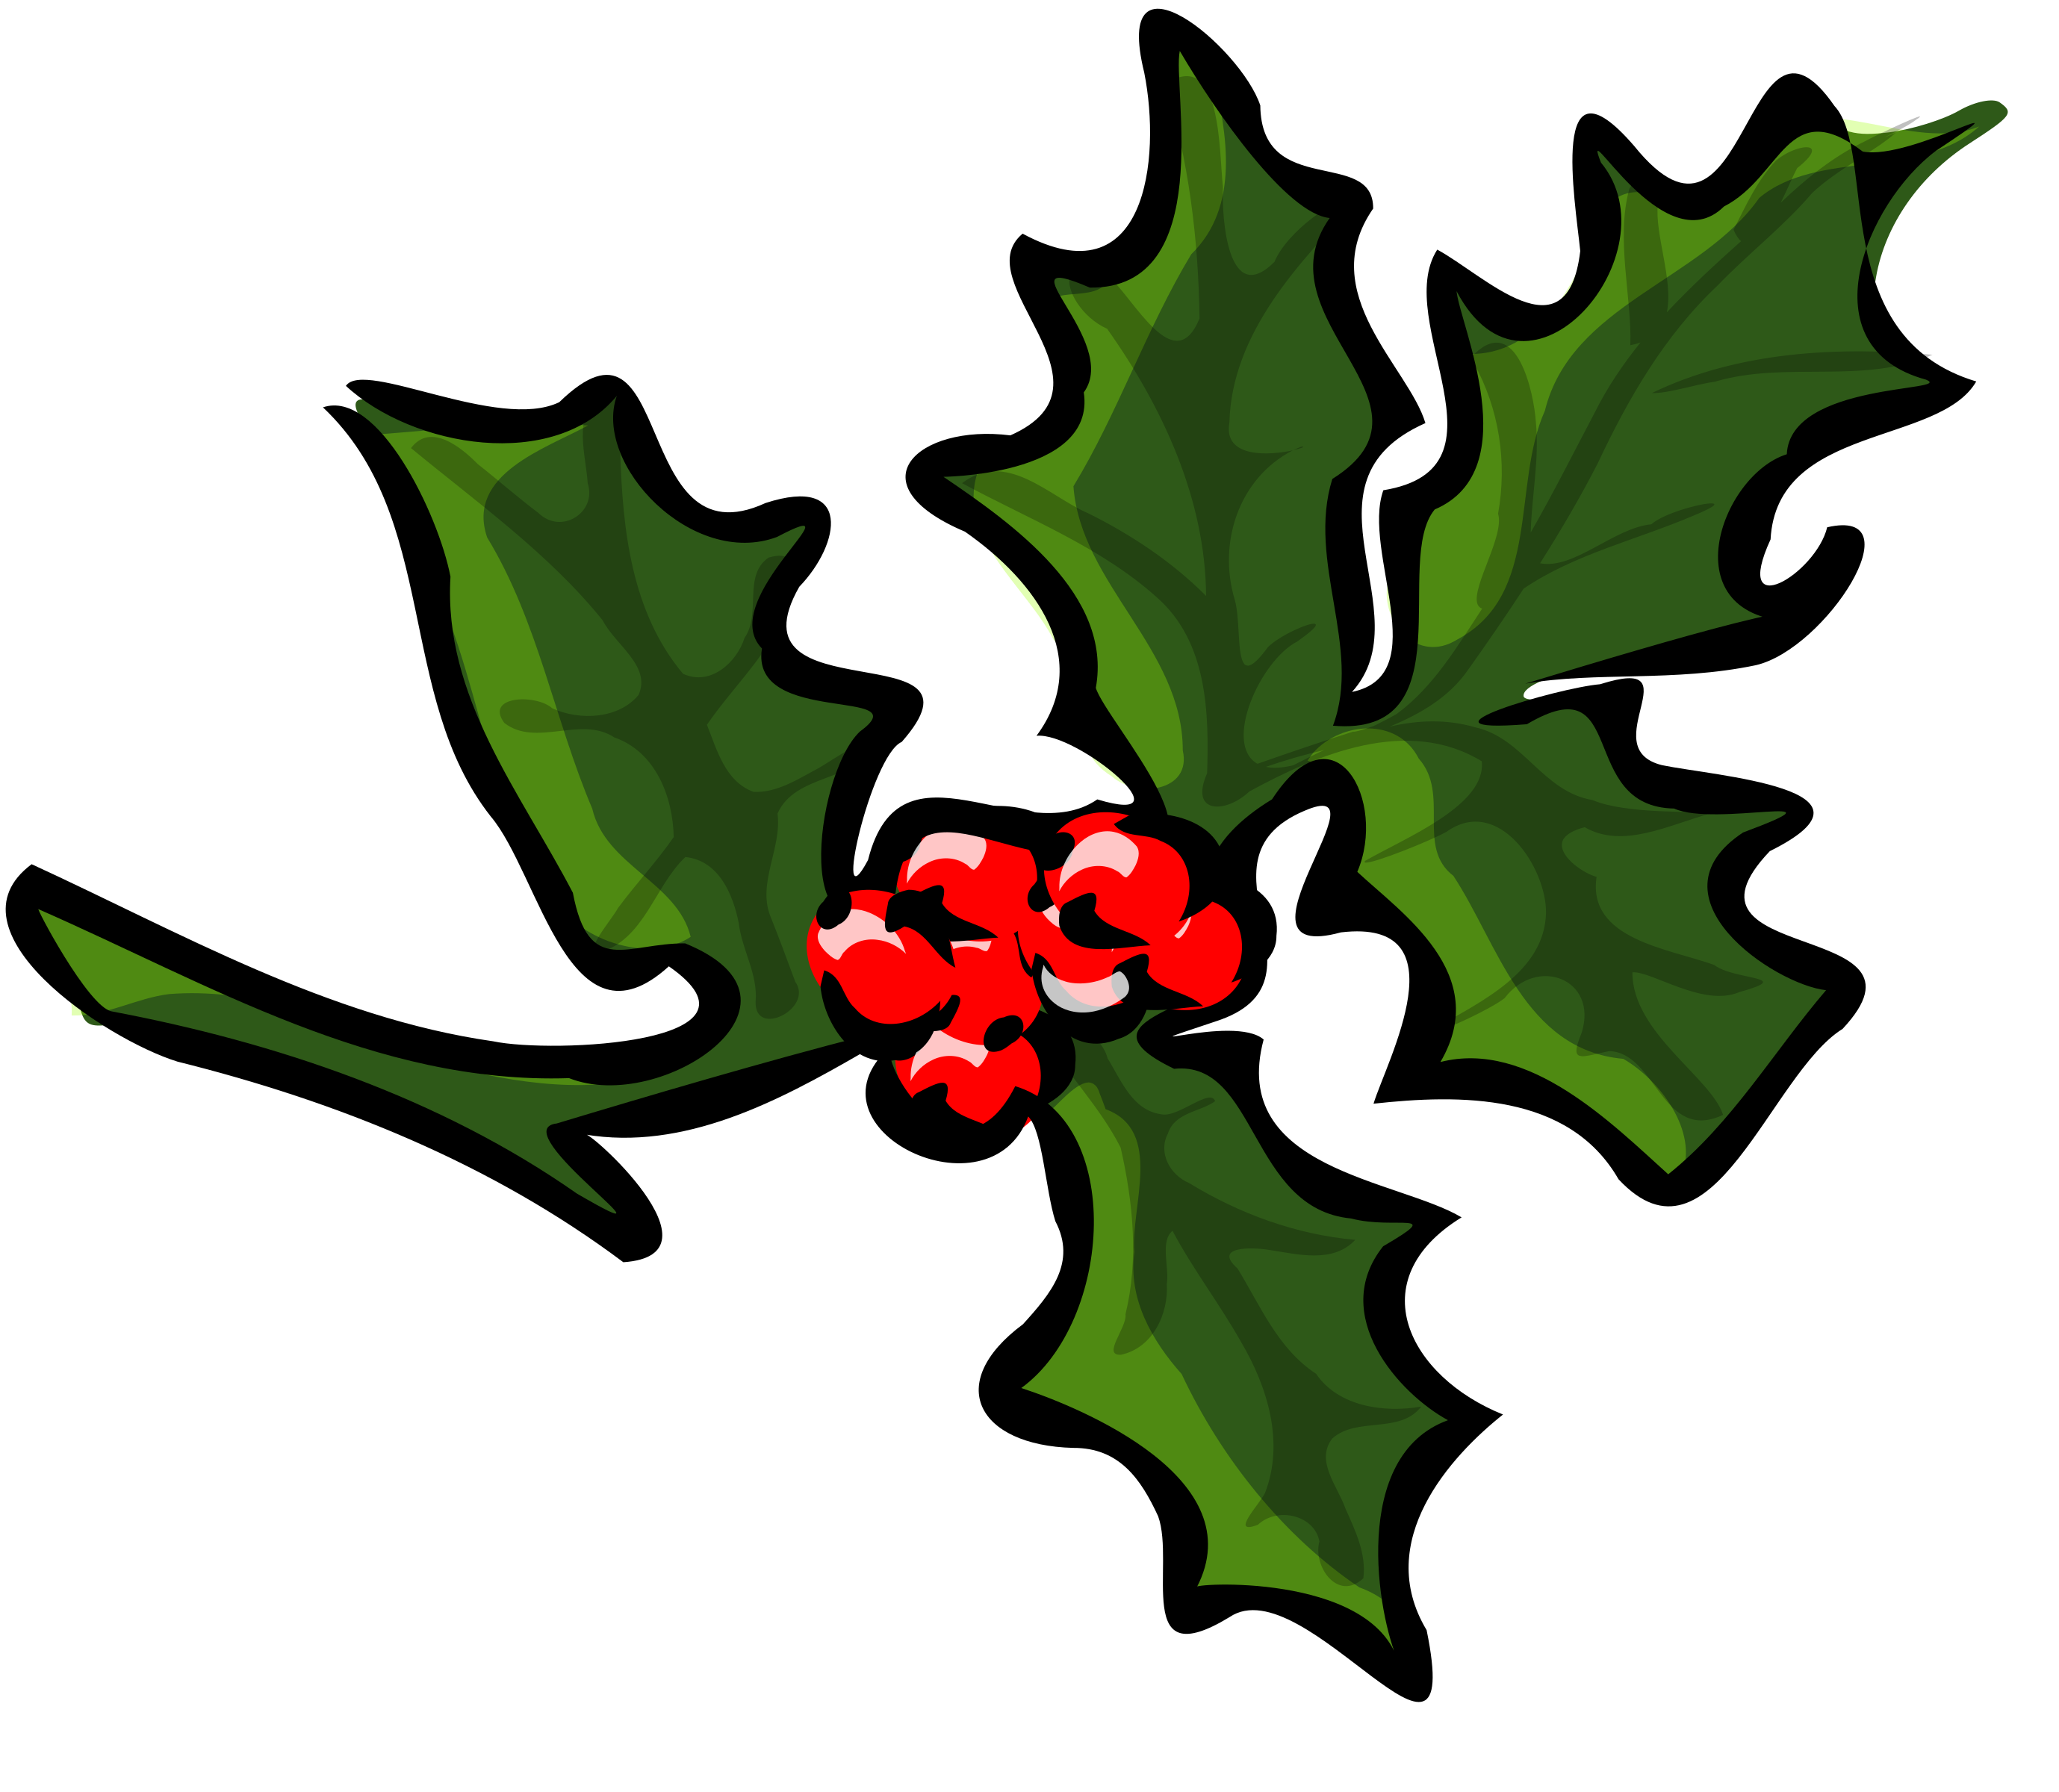 Branch clipart thick. Holly big image png